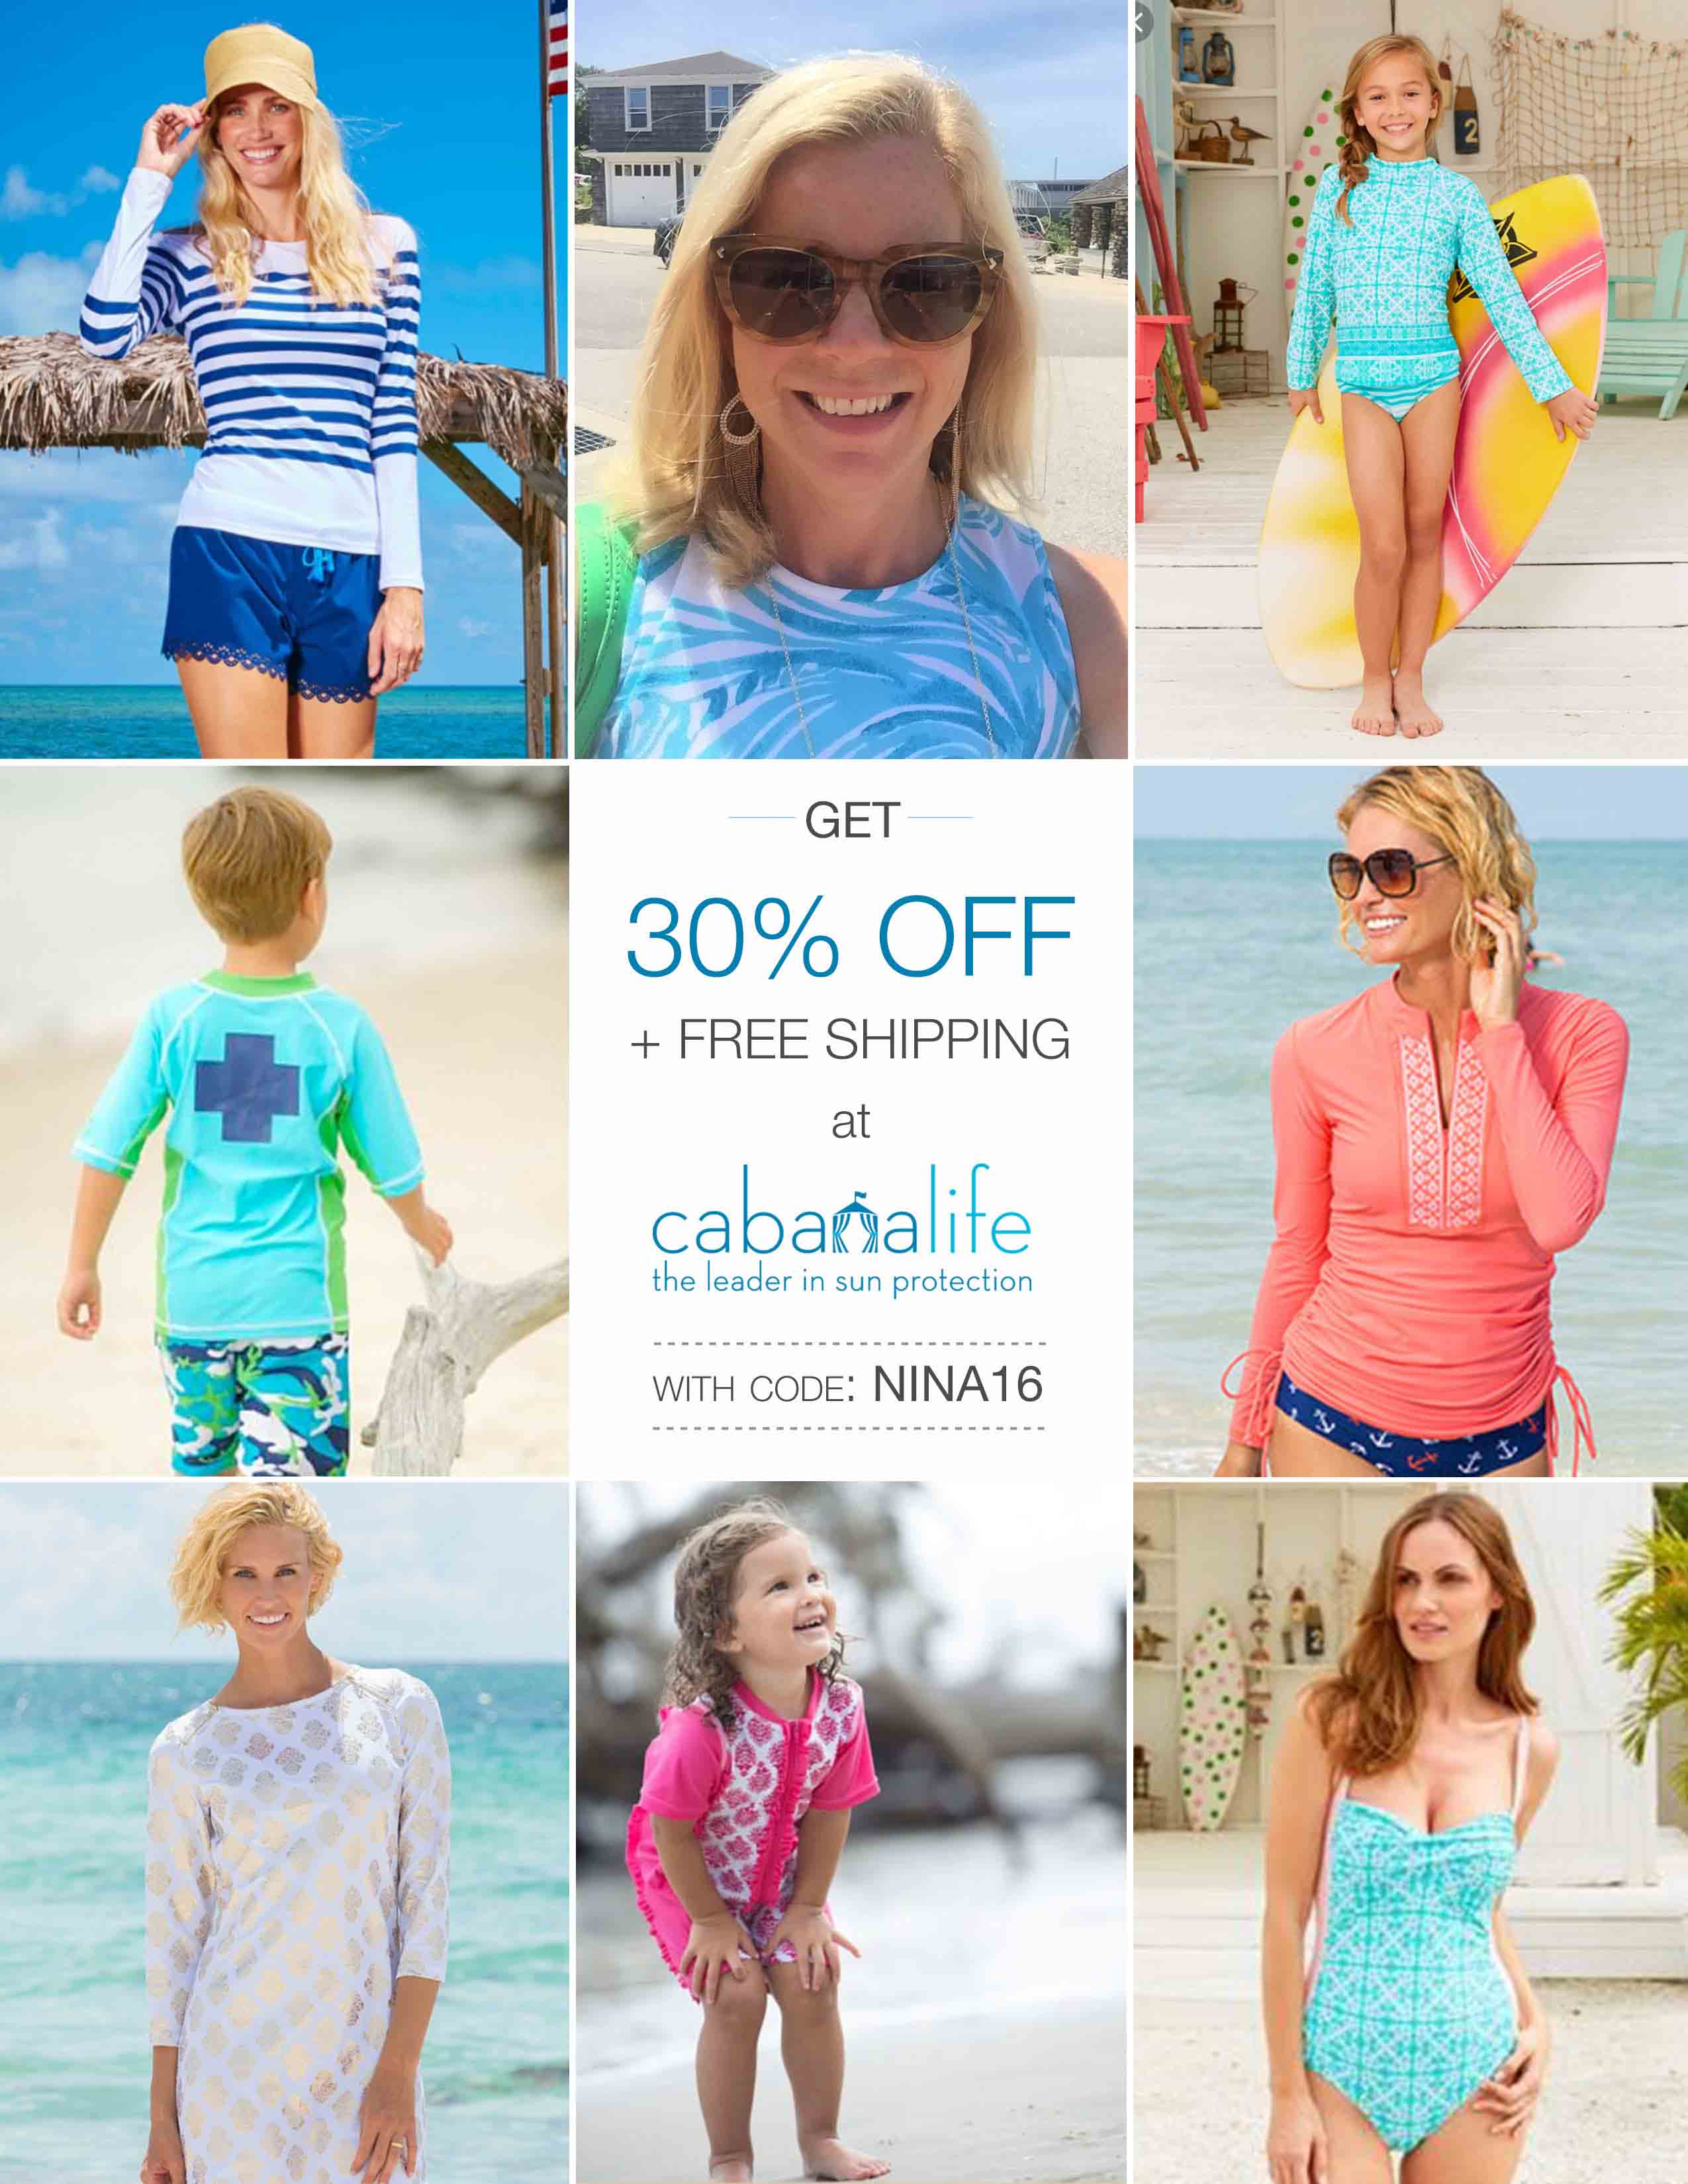 Check for Cabana Life's promo code exclusions. Cabana Life promo codes sometimes have exceptions on certain categories or brands. Look for the blue